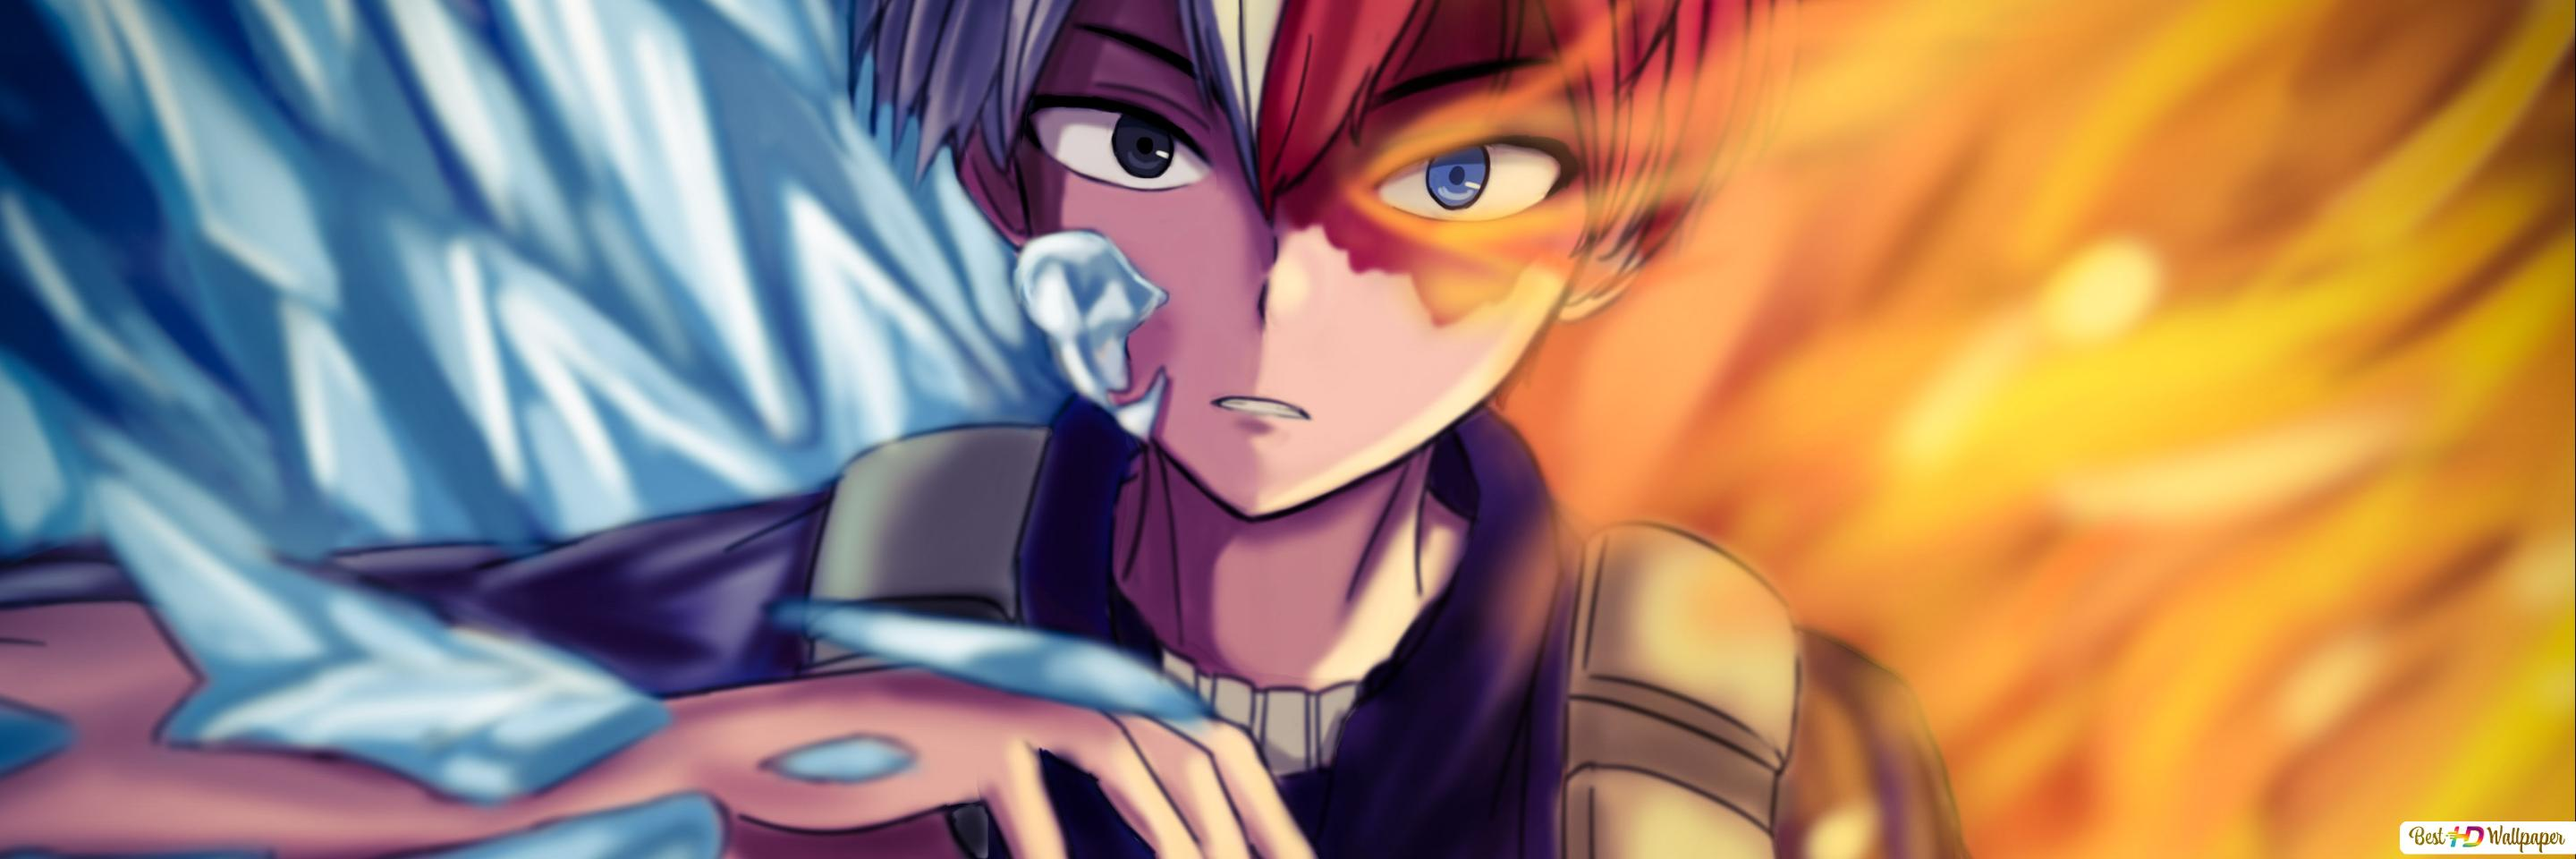 My Hero Academia Shoto Todoroki Fire Ice Hd Wallpaper Download